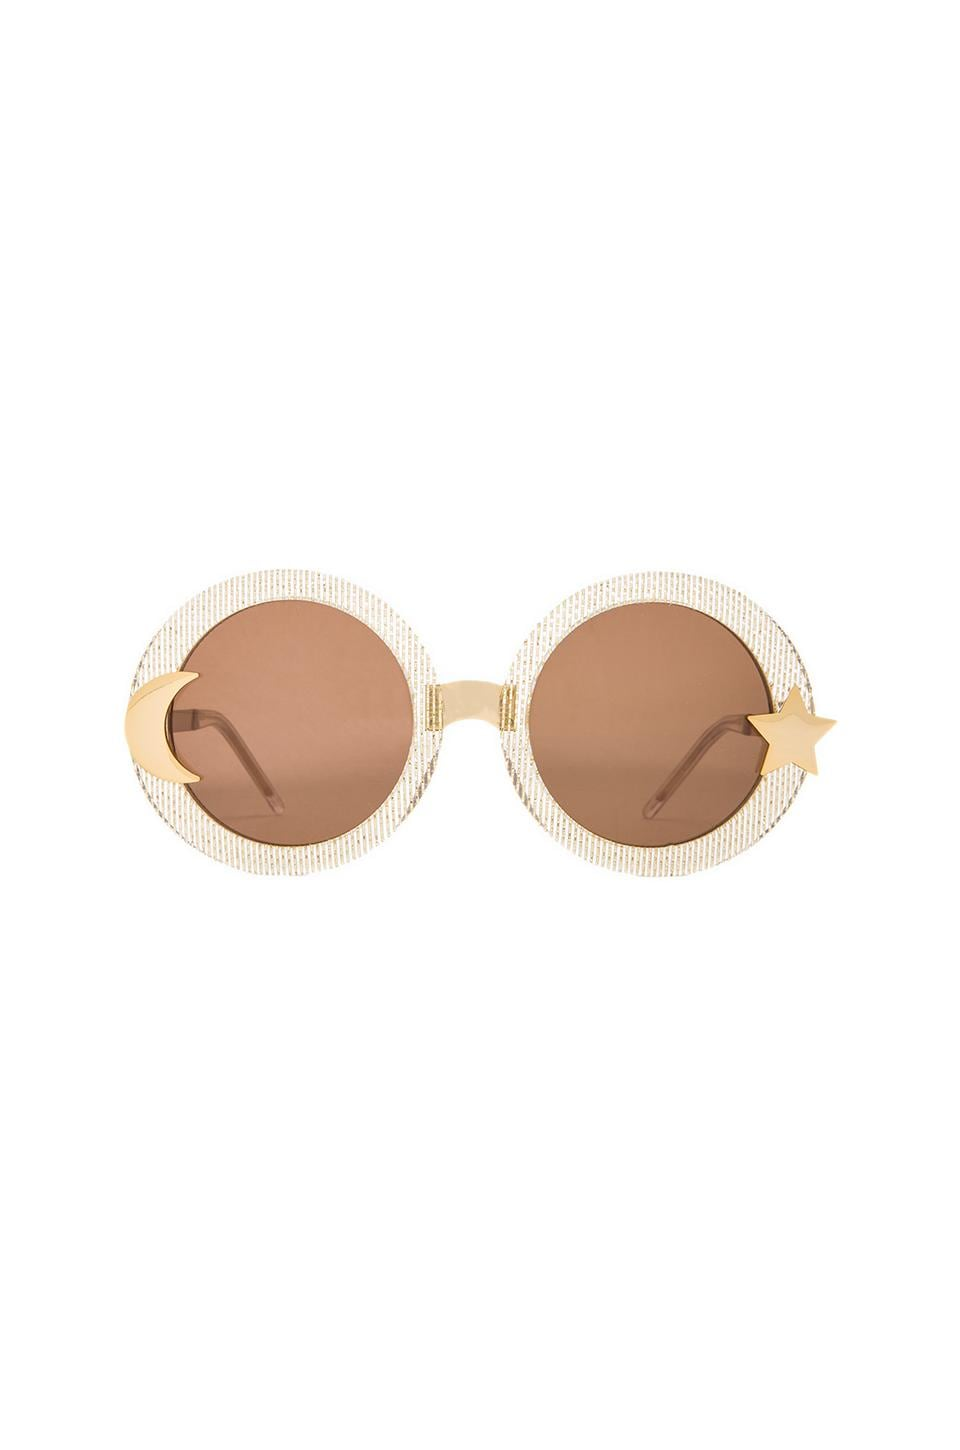 Wildfox Couture Luna Sunglasses in Gold Mesh